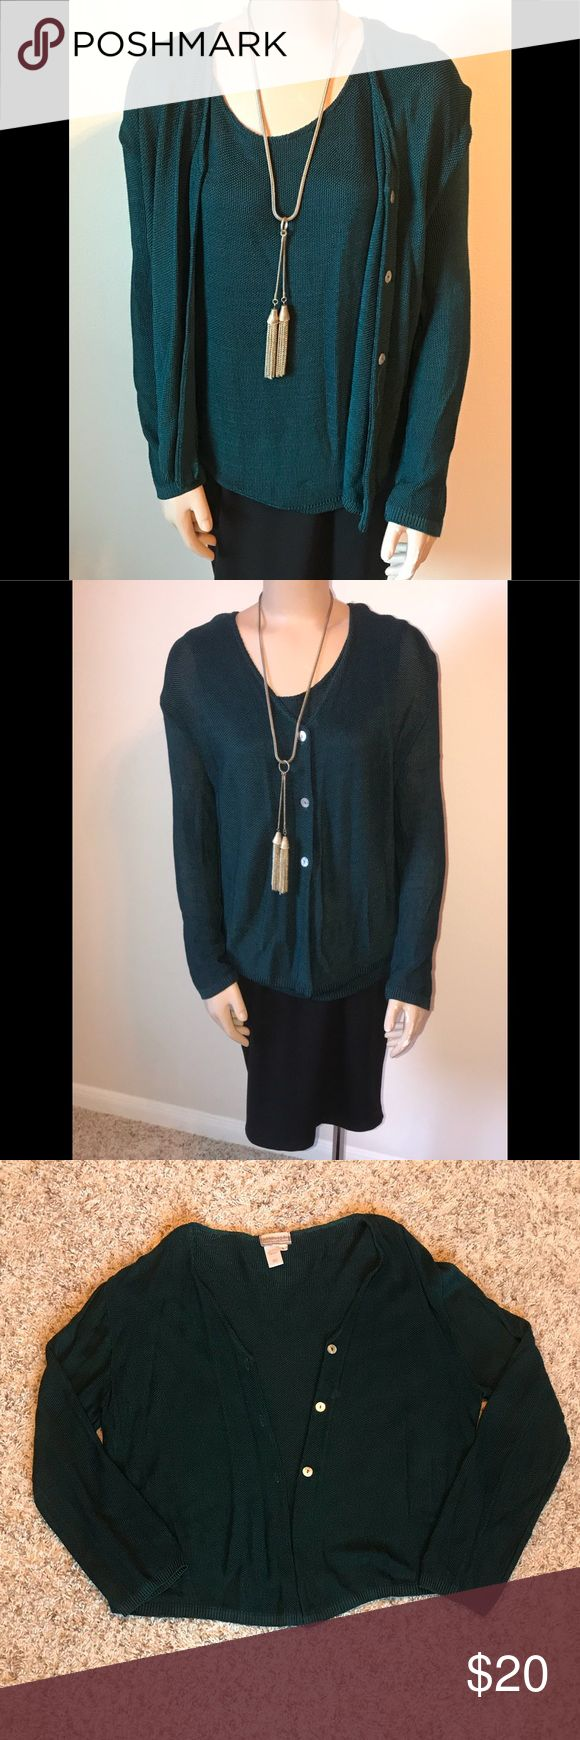 Coldwater Creek Sweater Set This green and black sweaters set includes a tank and a button up cardigan. It pairs well with a skirt or a pair of slacks. Sweaters Cardigans